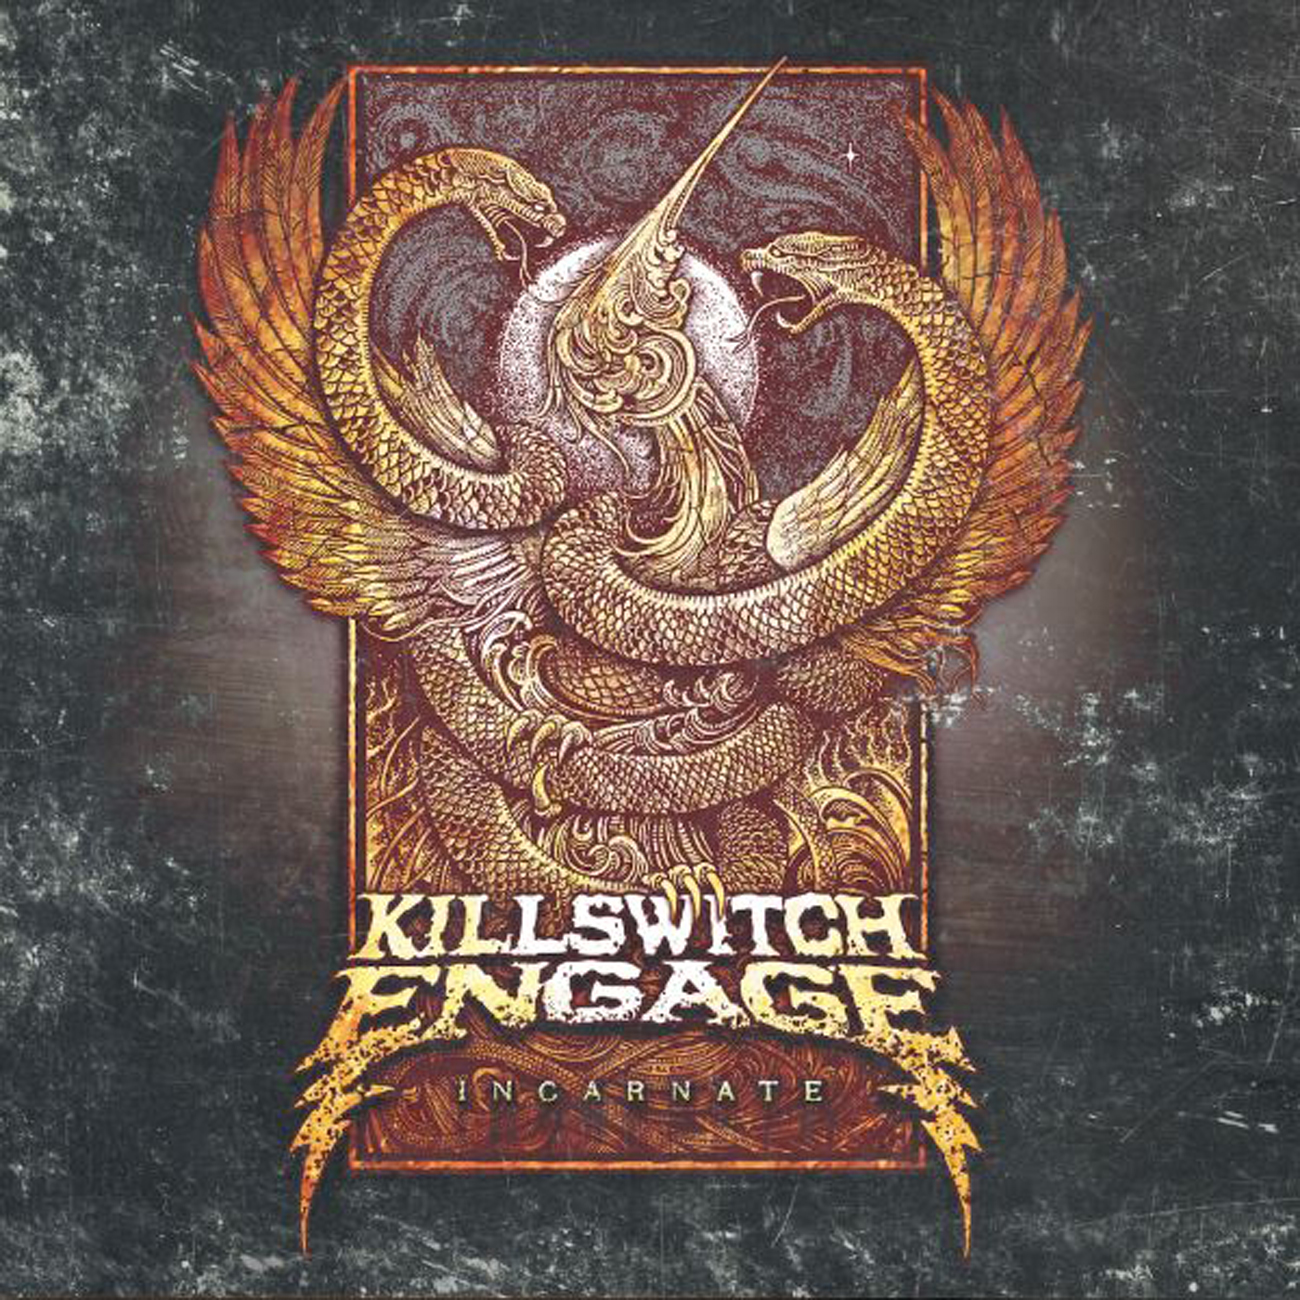 Killswitch Engage - Incarnate - Album Cover